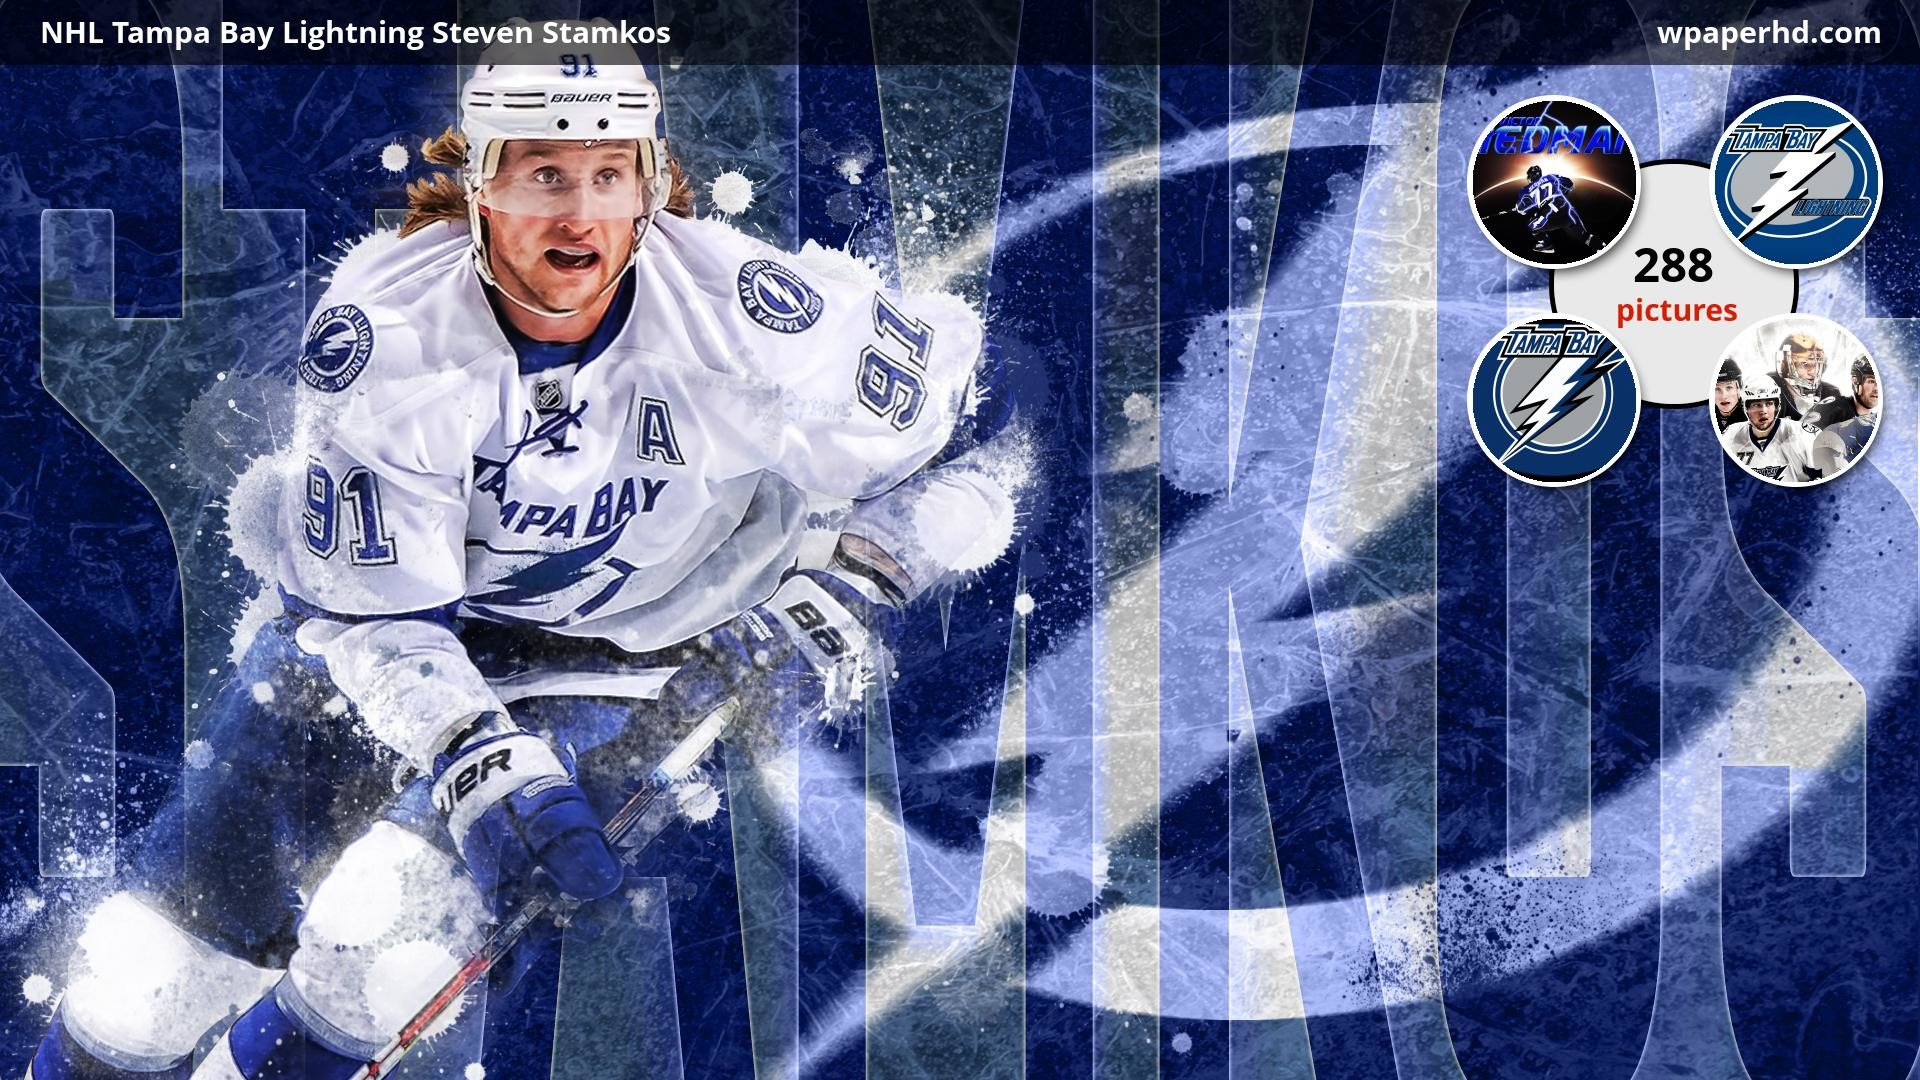 1920x1080 Description NHL Tampa Bay Lightning Steven Stamkos wallpaper from Hockey  category. You are on page with NHL Tampa Bay Lightning Steven Stamkos  wallpaper ...